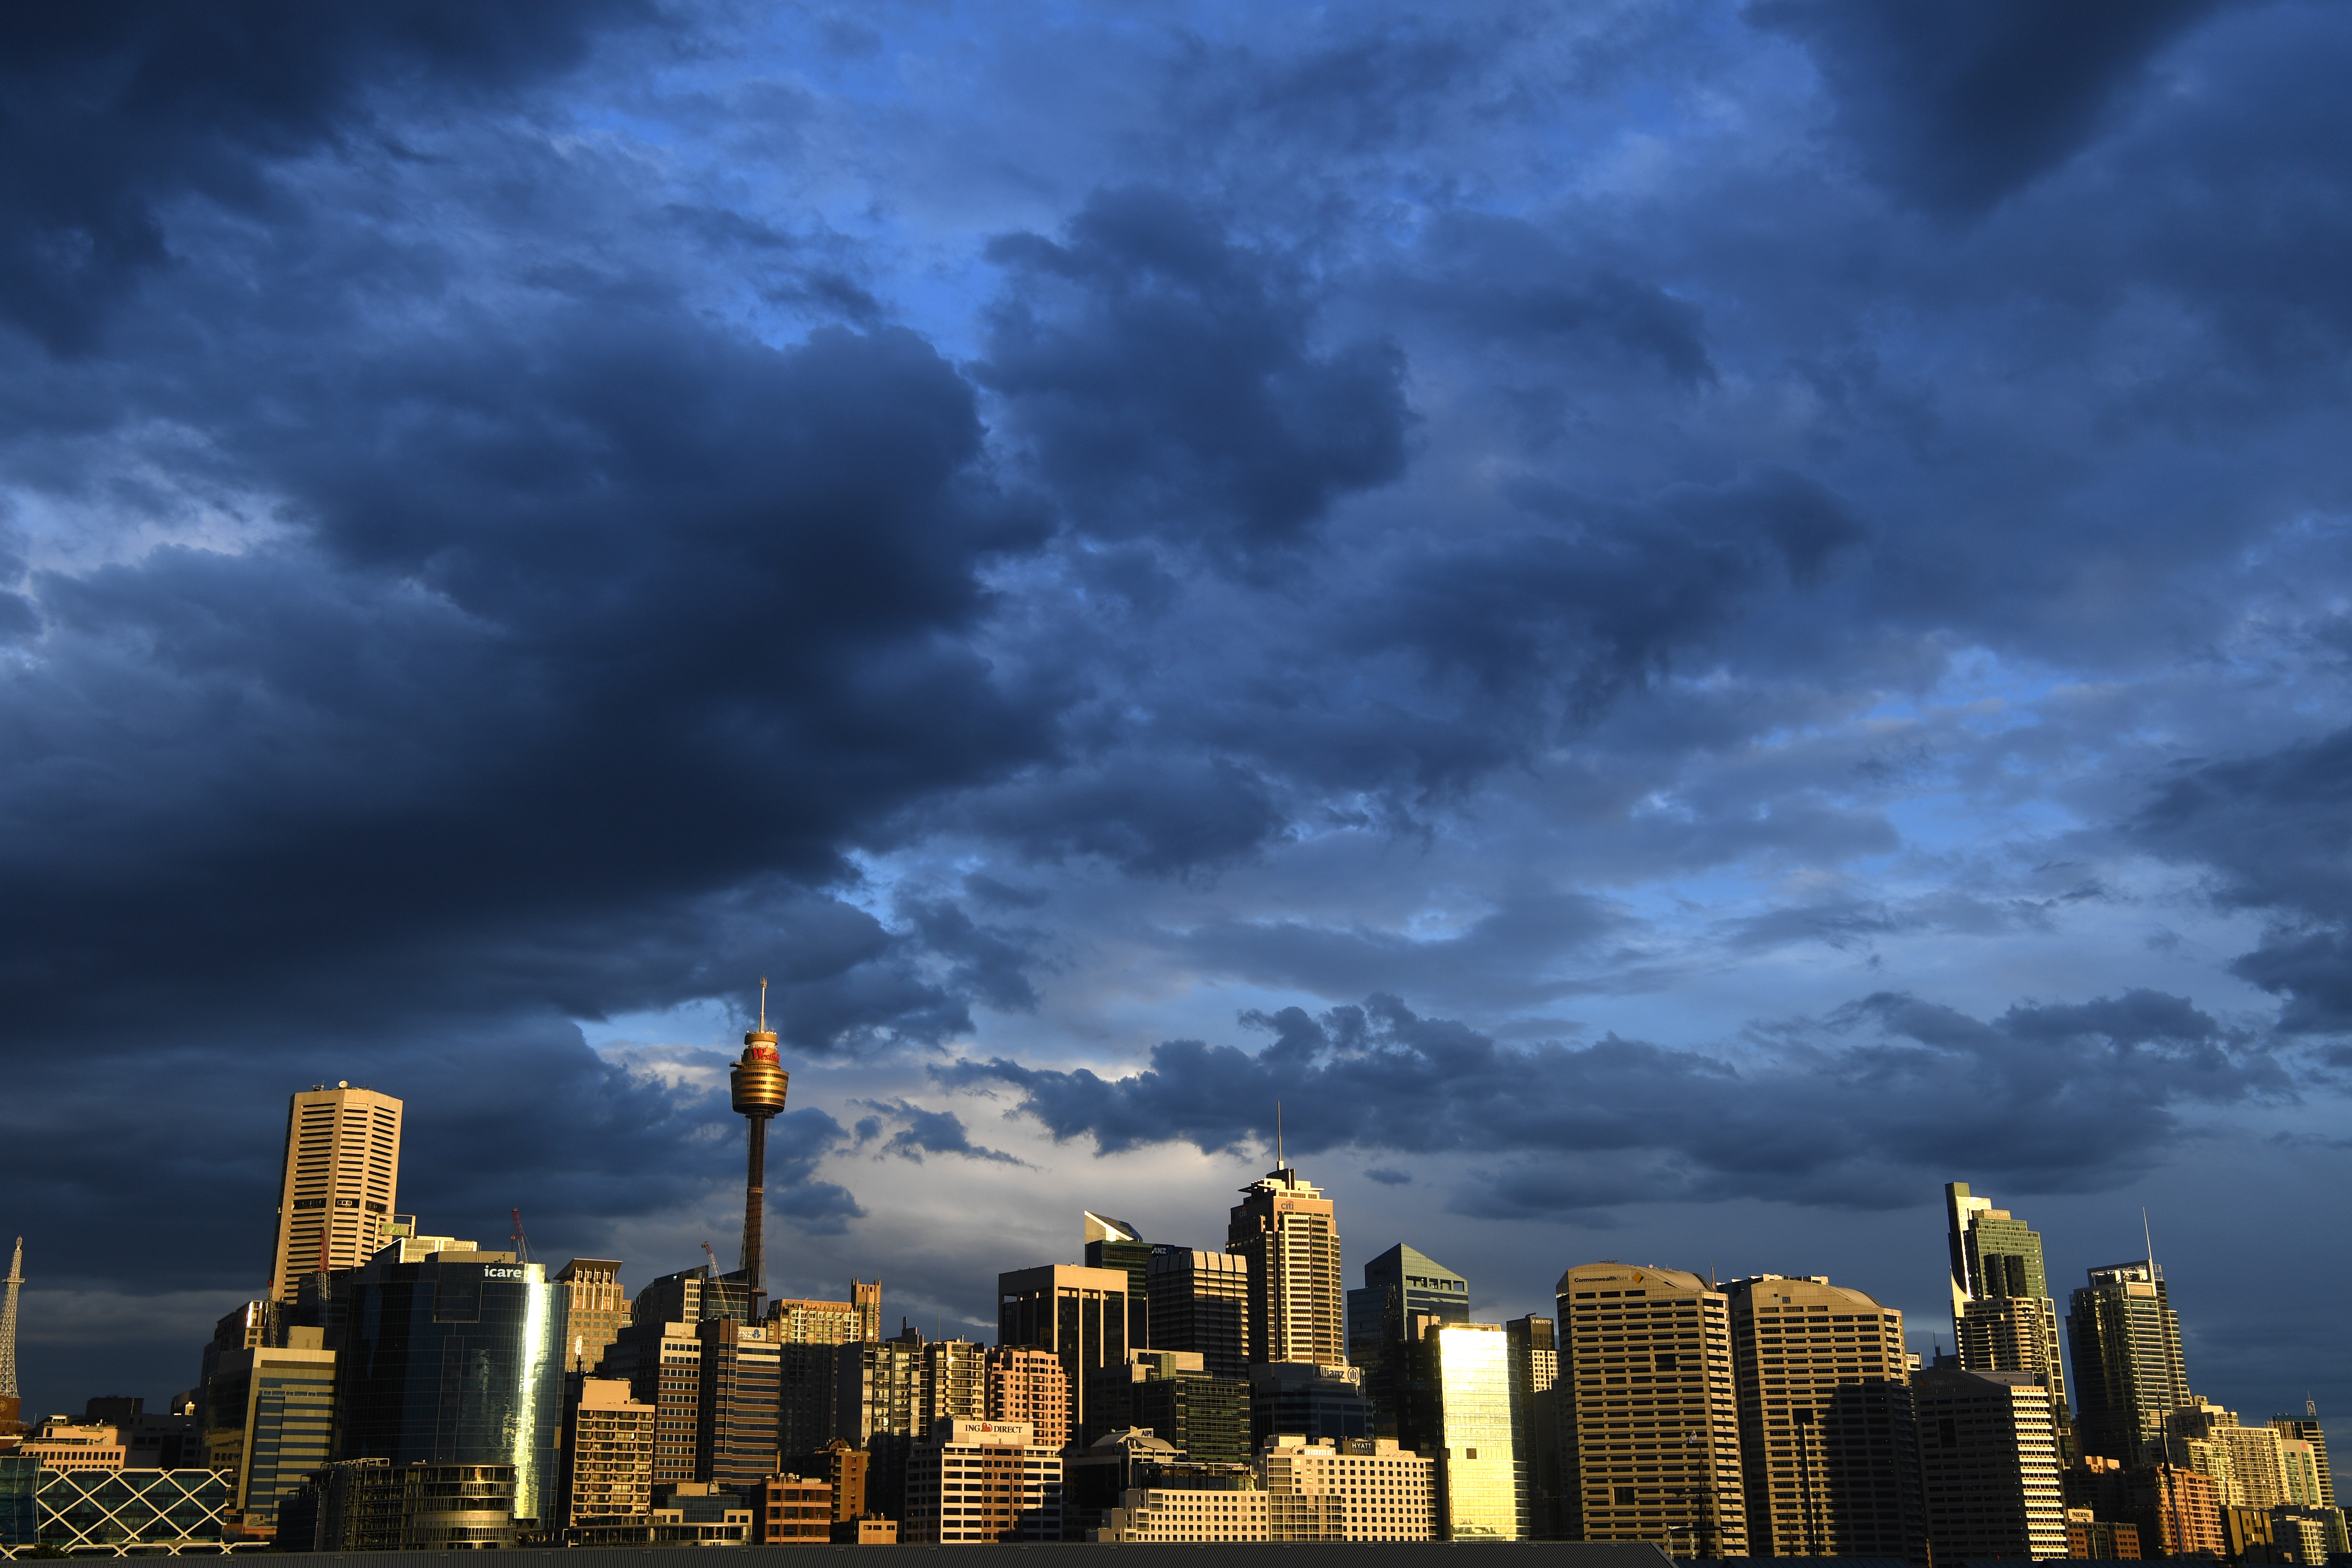 Clouds gather over the Sydney CBD skyline. Workers are expected to return to the office in greater numbers over the coming weeks.